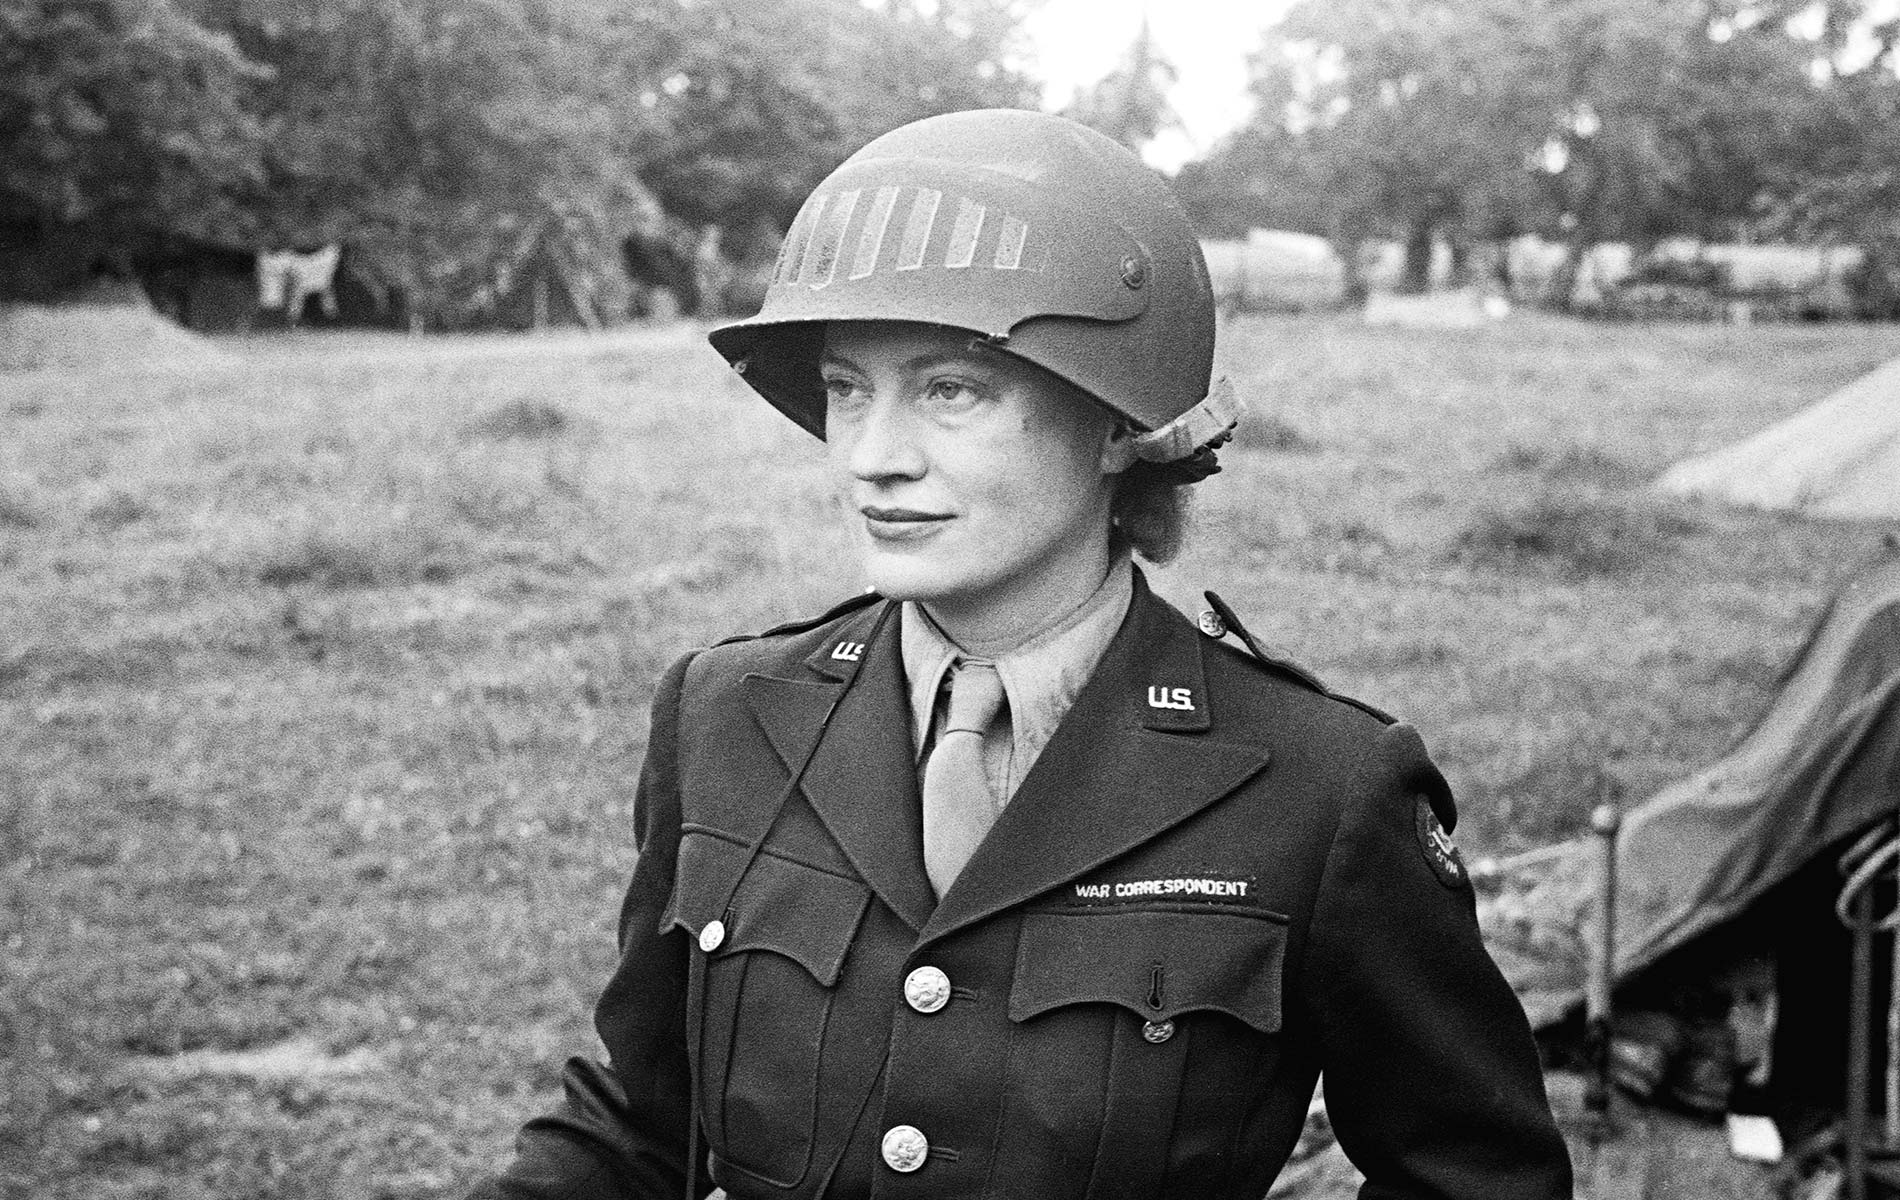 Lee Miller in steel helmet specially designed for using a camera, Normandy, France 1944